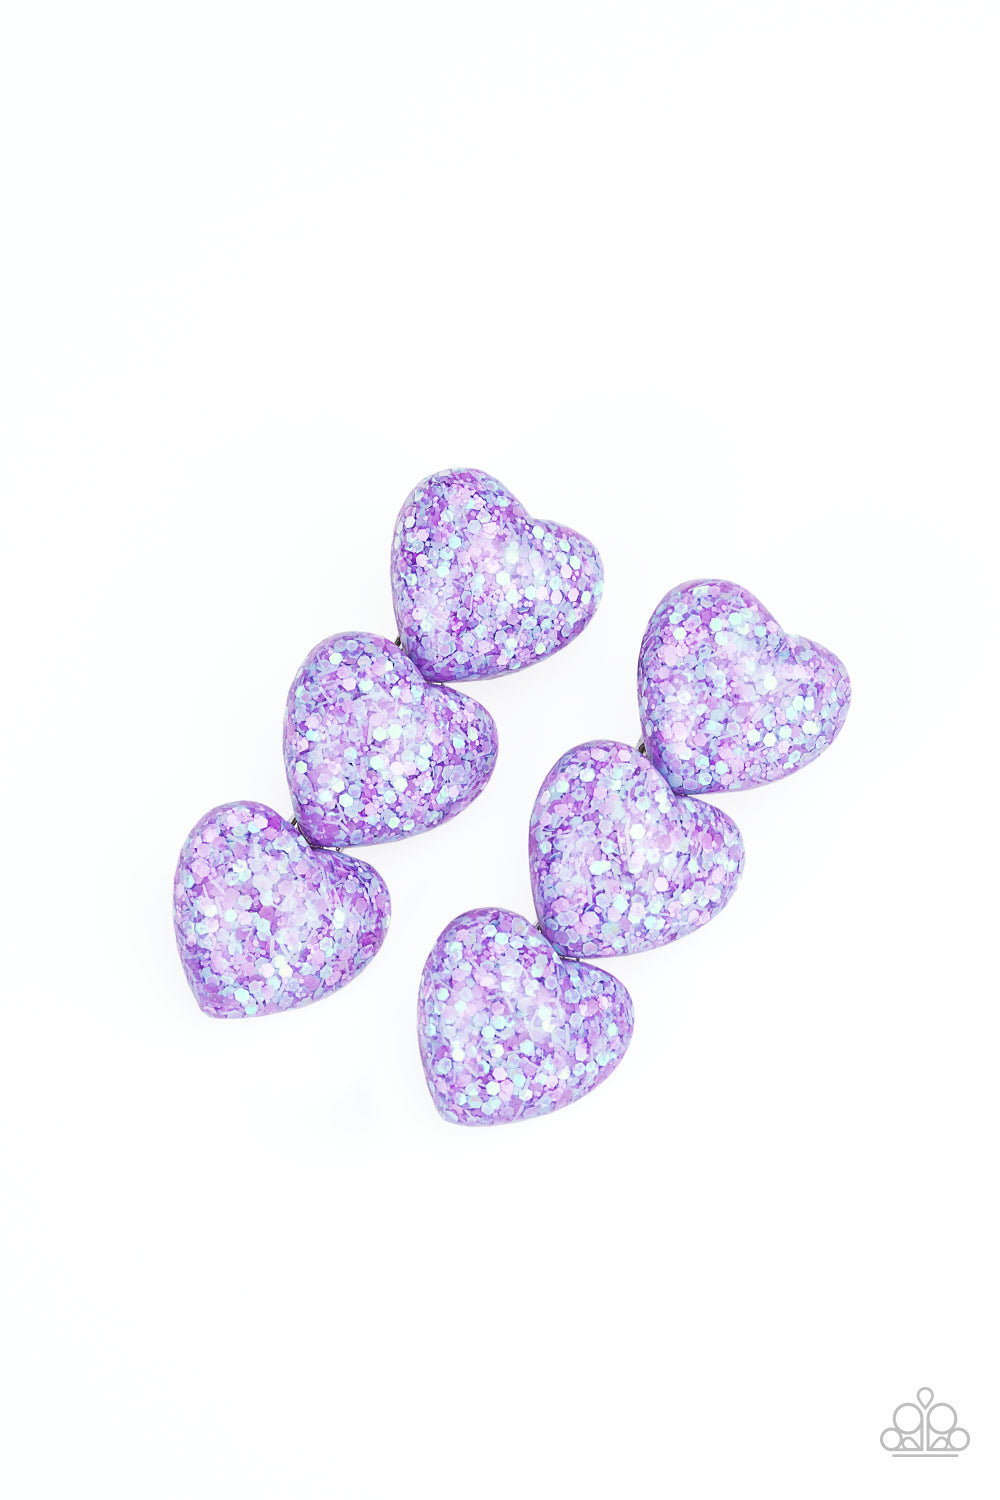 Paparazzi   Heart Full of Confetti - Purple Hair Clips